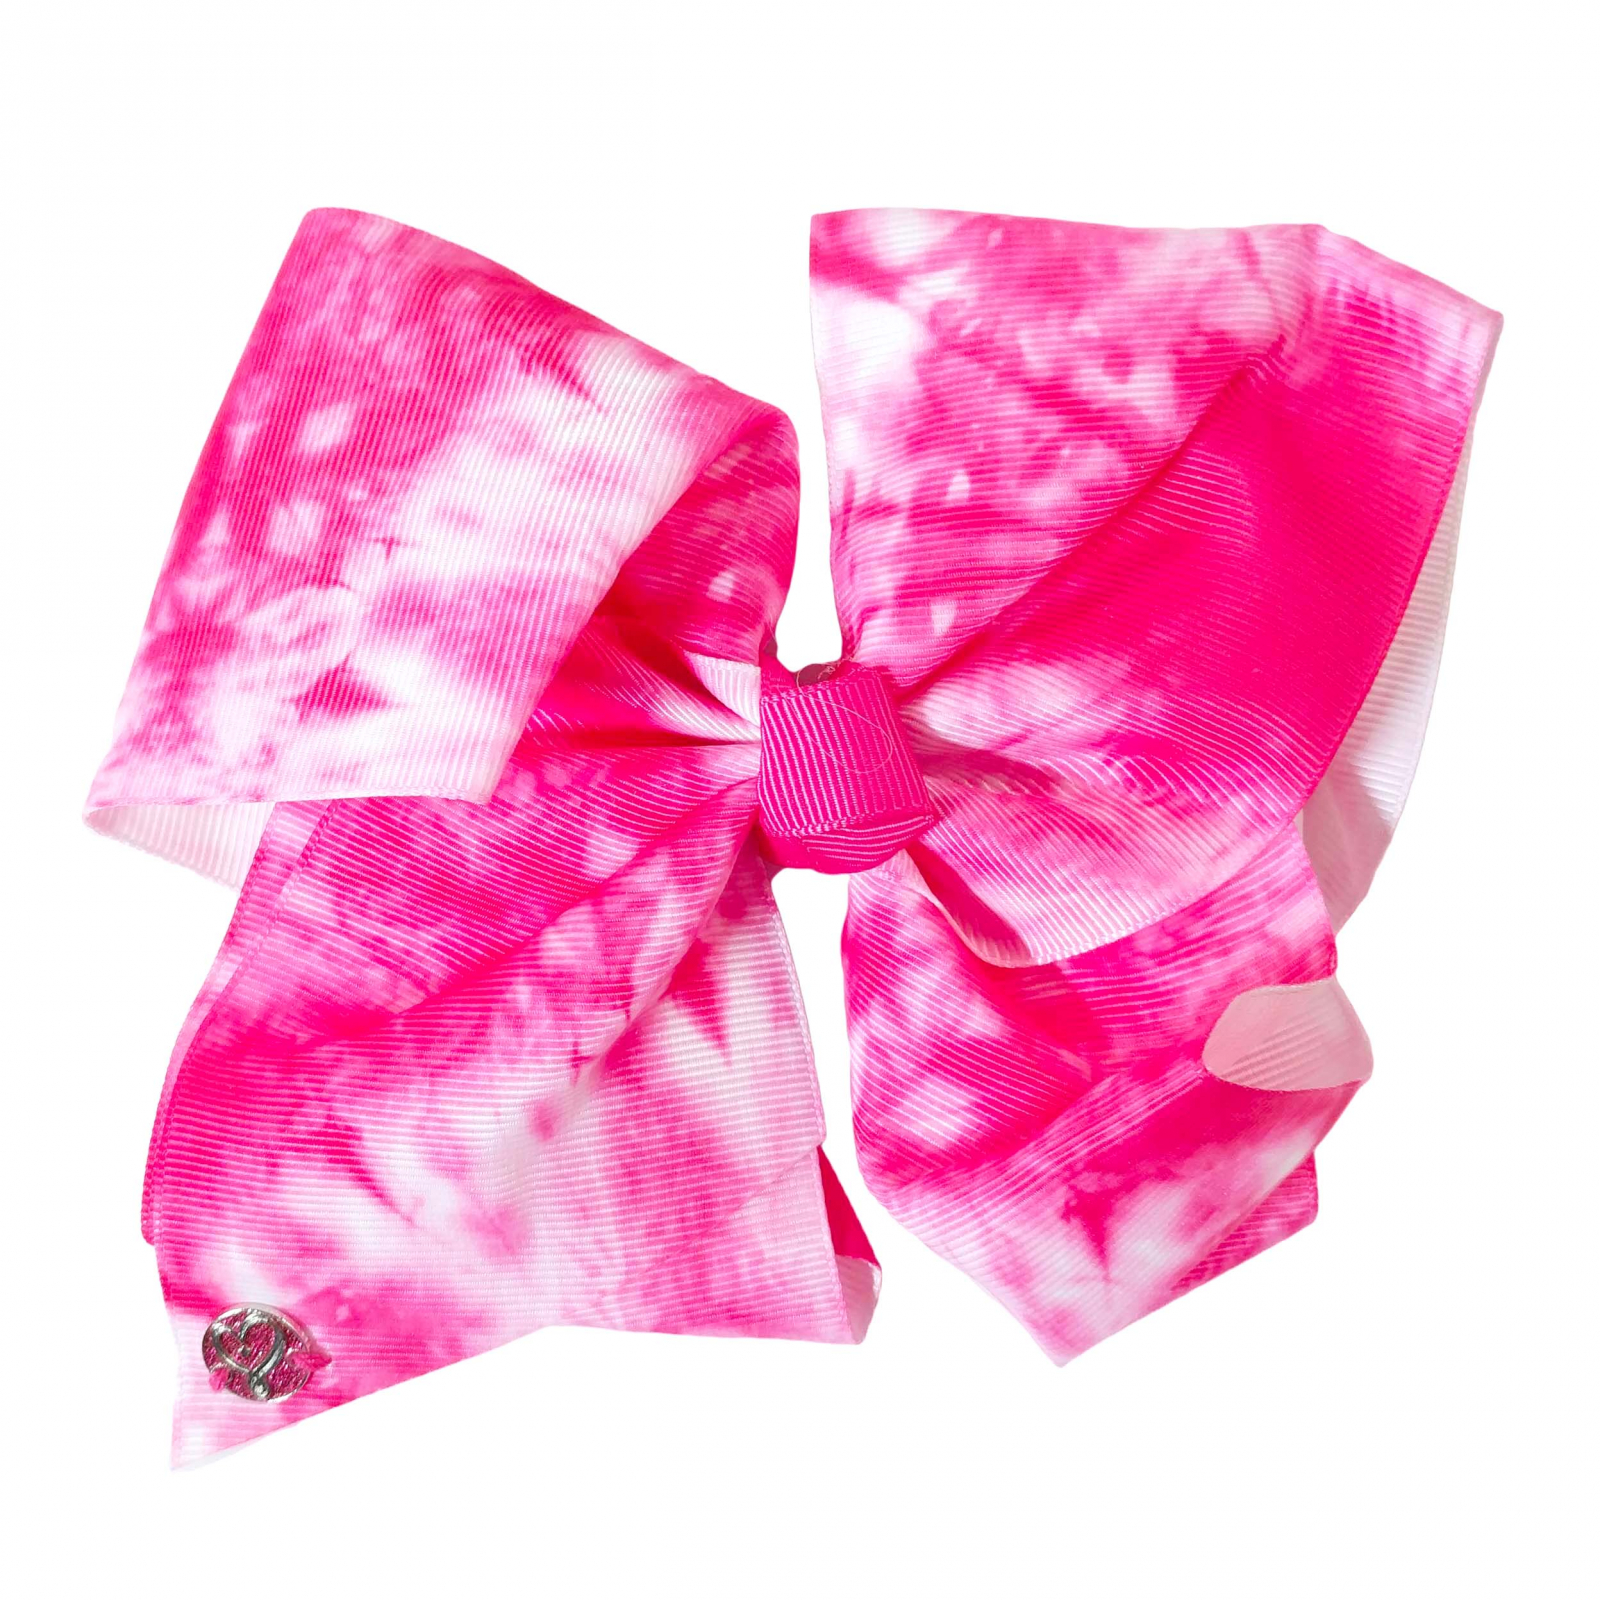 Nickelodeon JoJo Siwa Girls Large Pink Tie Dye Bow Kids Hair